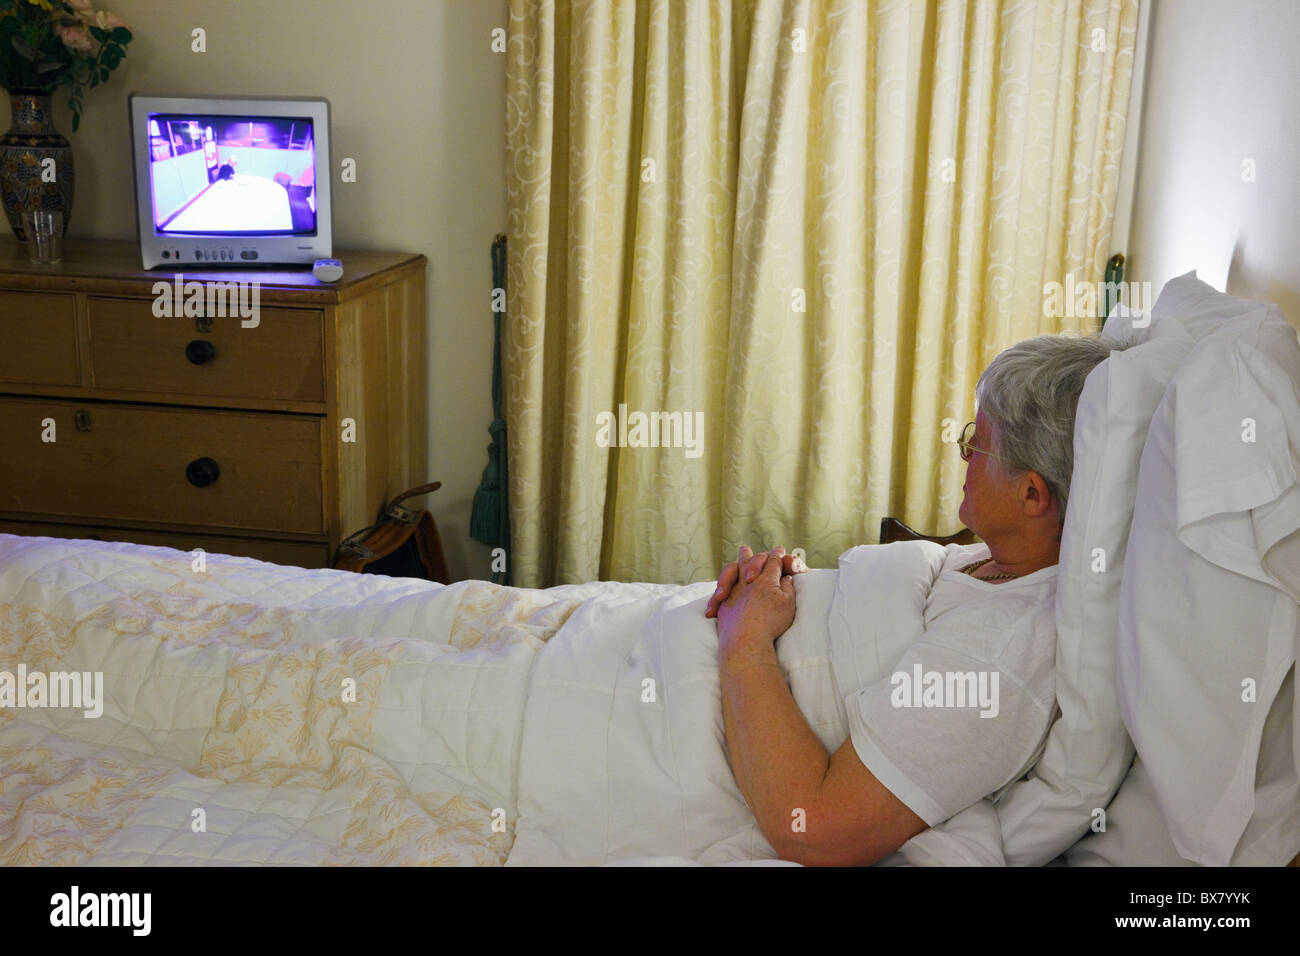 Elderly woman retiree lying in bed watching television in a hotel bedroom relaxing on holiday. England, UK, Britain. - Stock Image